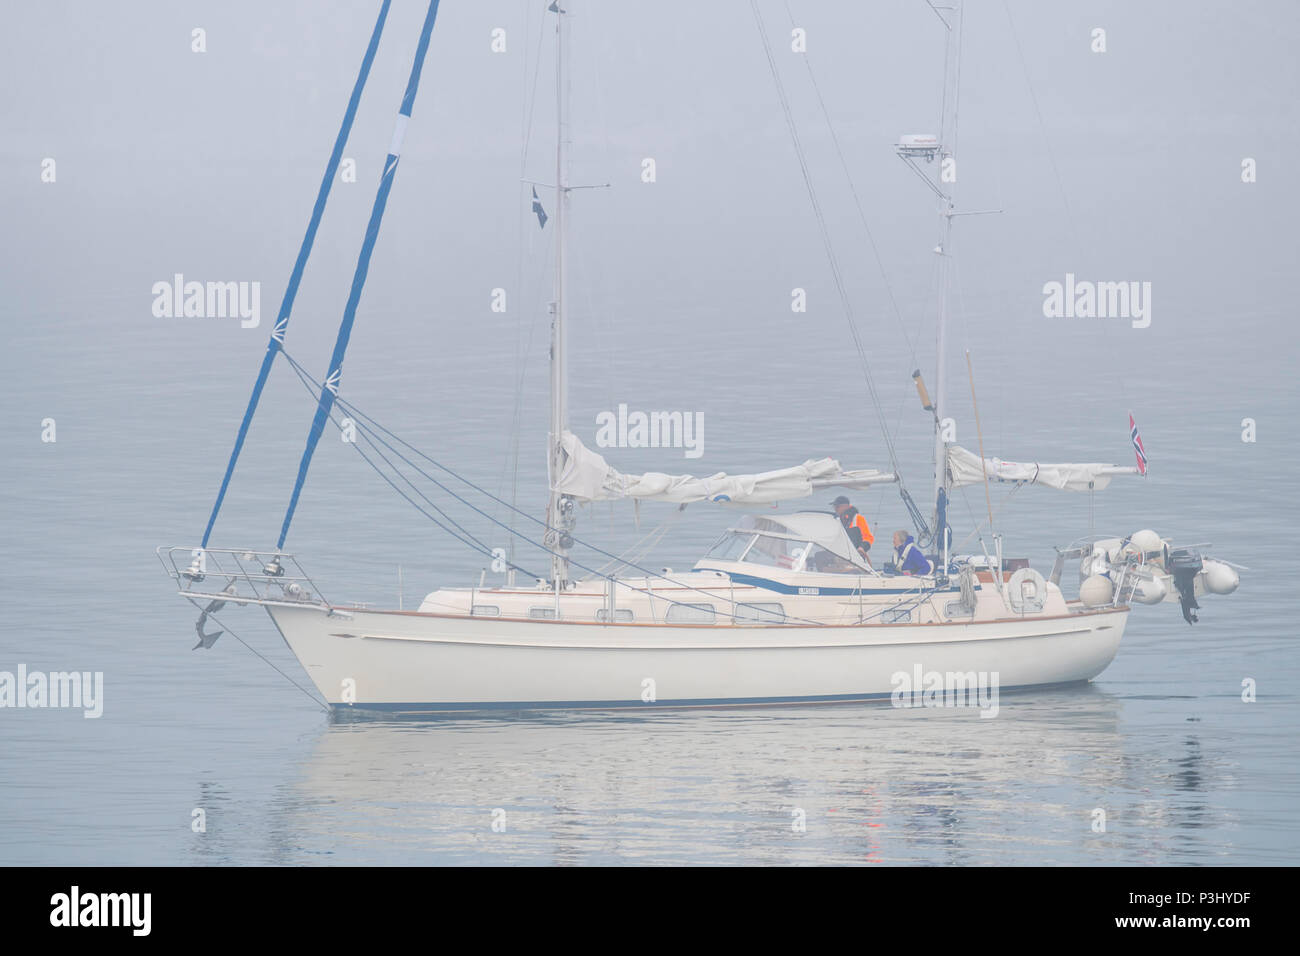 Sailboat / sailing boat / yacht with lowered sails at sea during bad visibility due to thick fog / dense mist - Stock Image